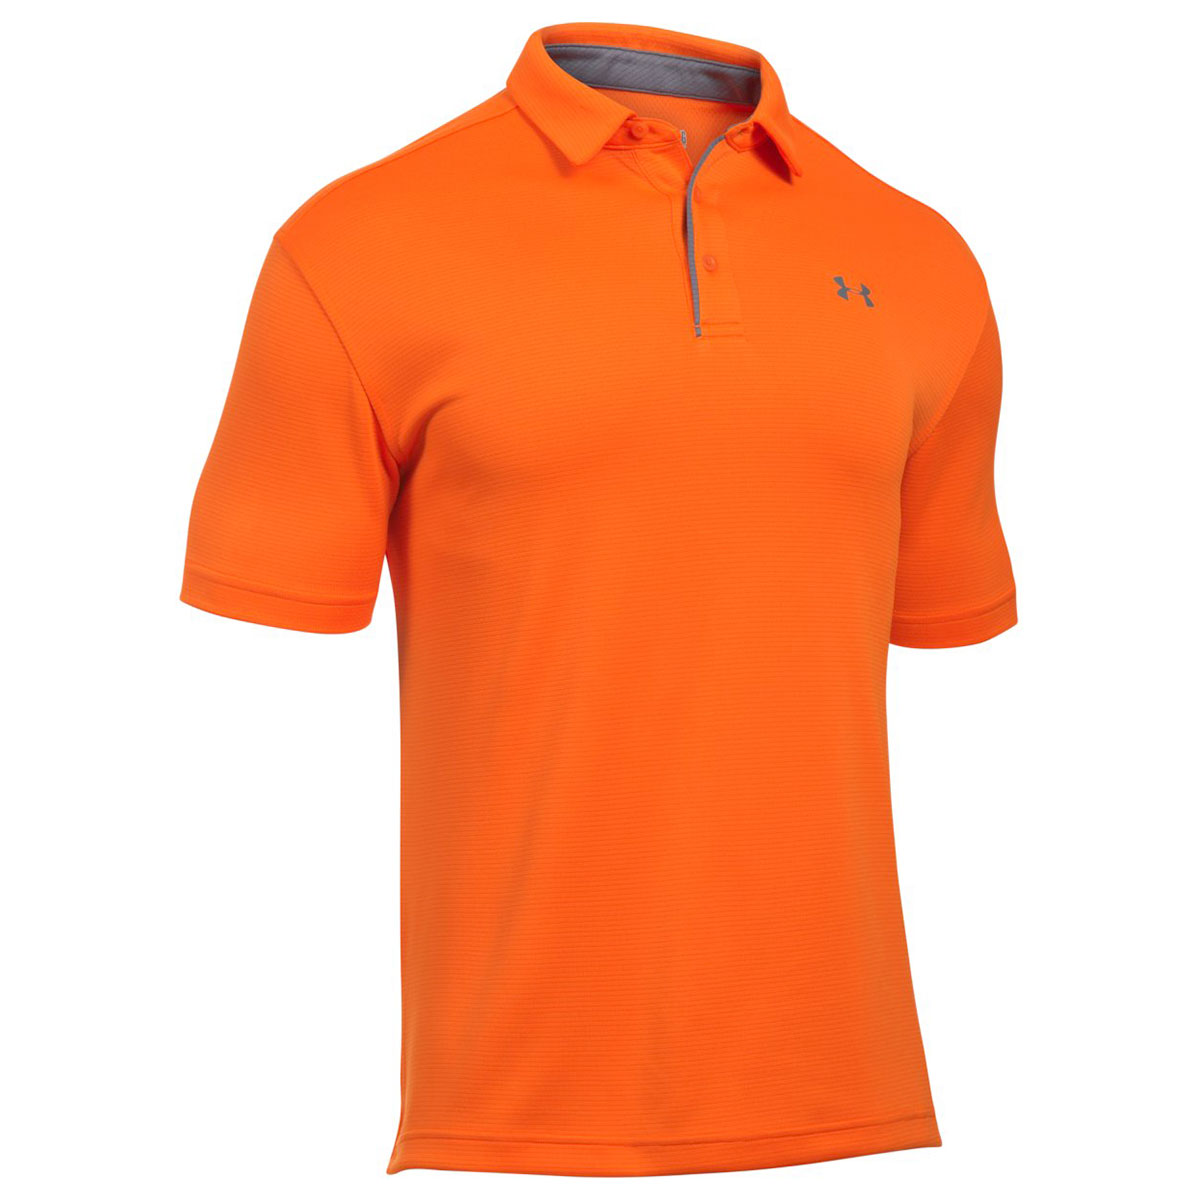 Under-Armour-Mens-2019-Golf-Tech-Wicking-Textured-Soft-Light-Polo-Shirt thumbnail 80